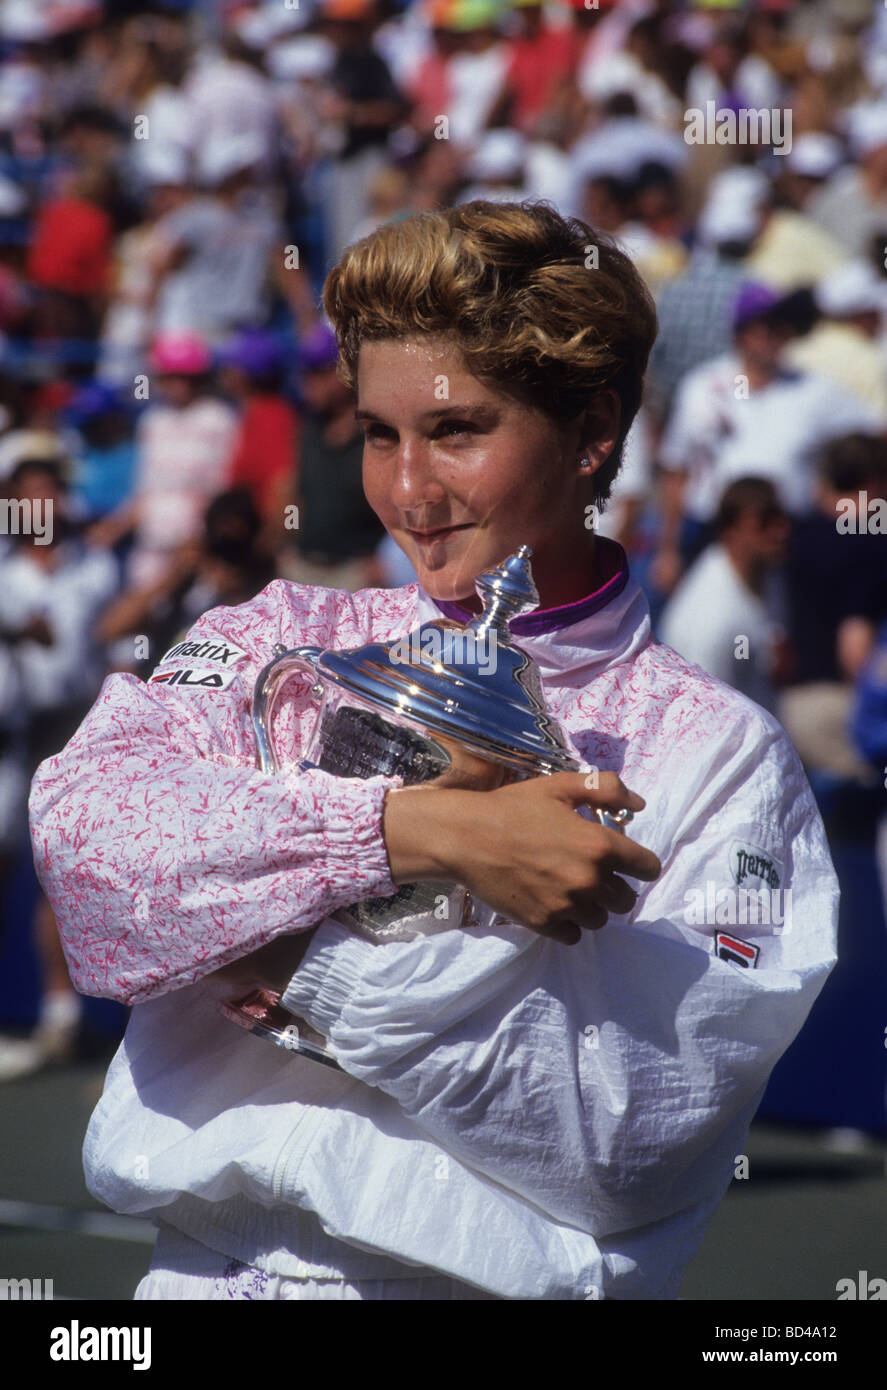 Monica Seles USA at the 1991 US Open Tennis Championships Stock